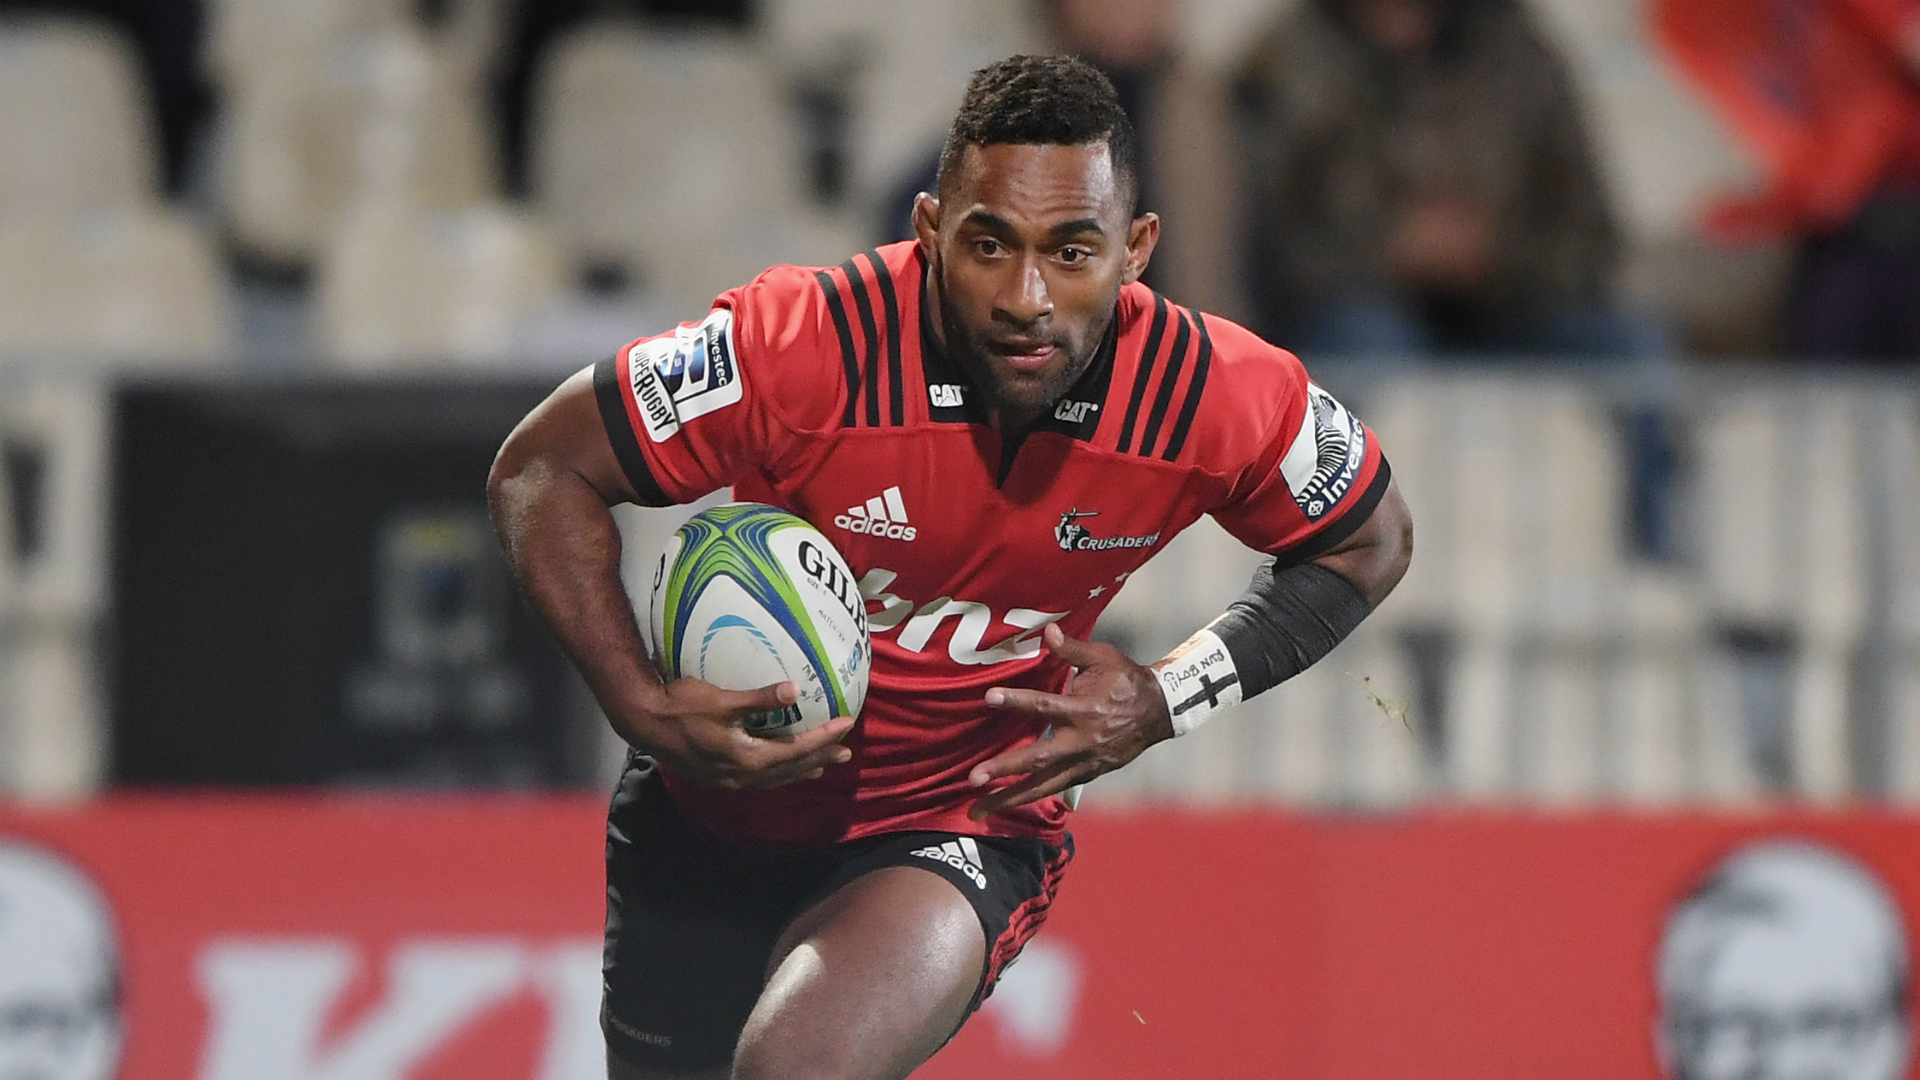 Crusaders rout Rebels to clinch top spot, Waratahs' play-off hopes all but over